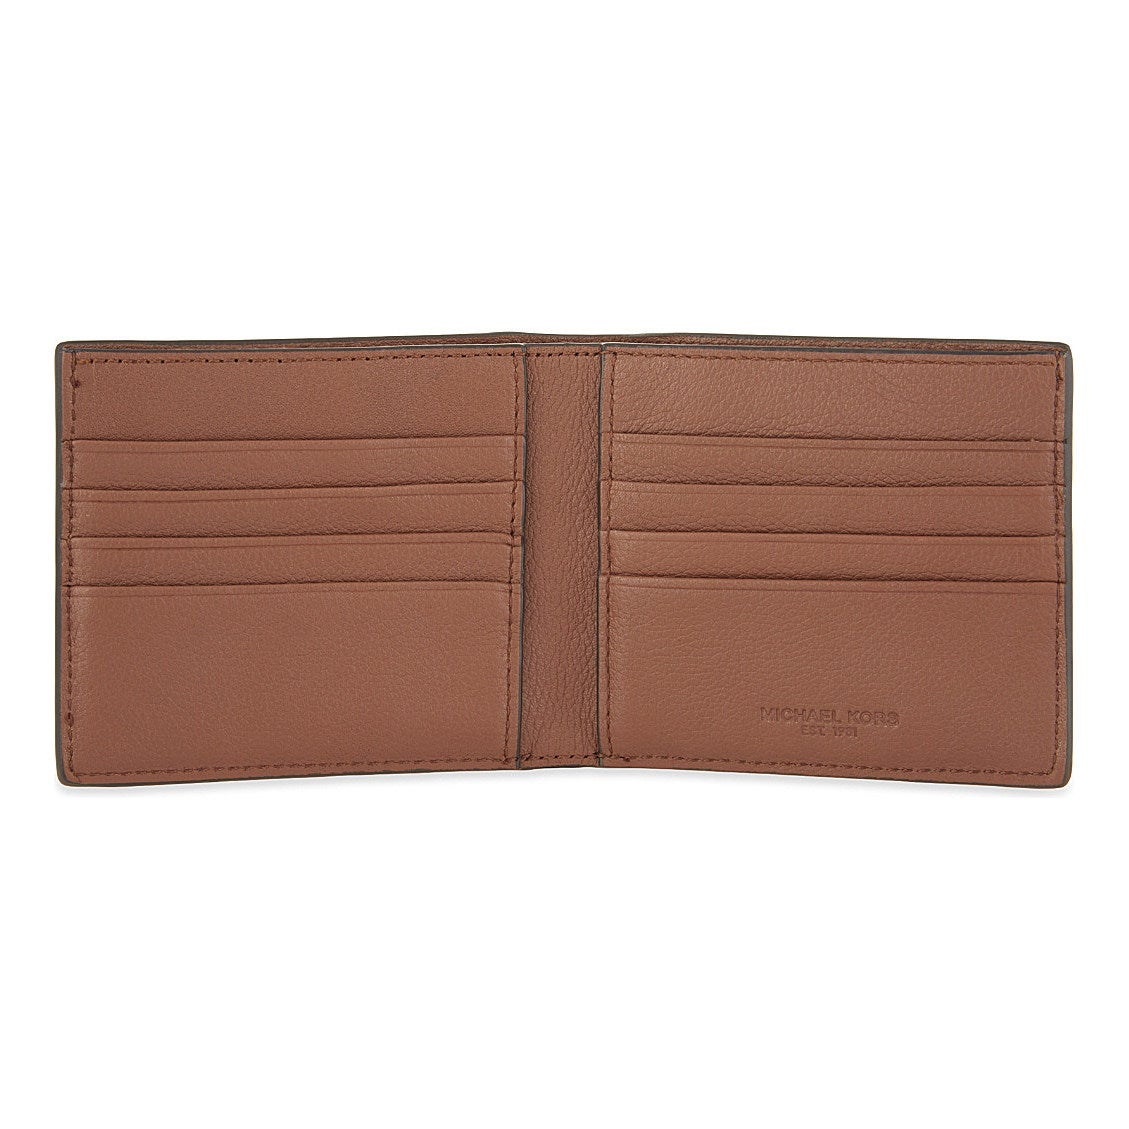 692e6f98eb2f3a Shop Michael Kors Men's Bryant Luggage Brown Leather Billfold/Wallet - Free  Shipping Today - Overstock - 13839505